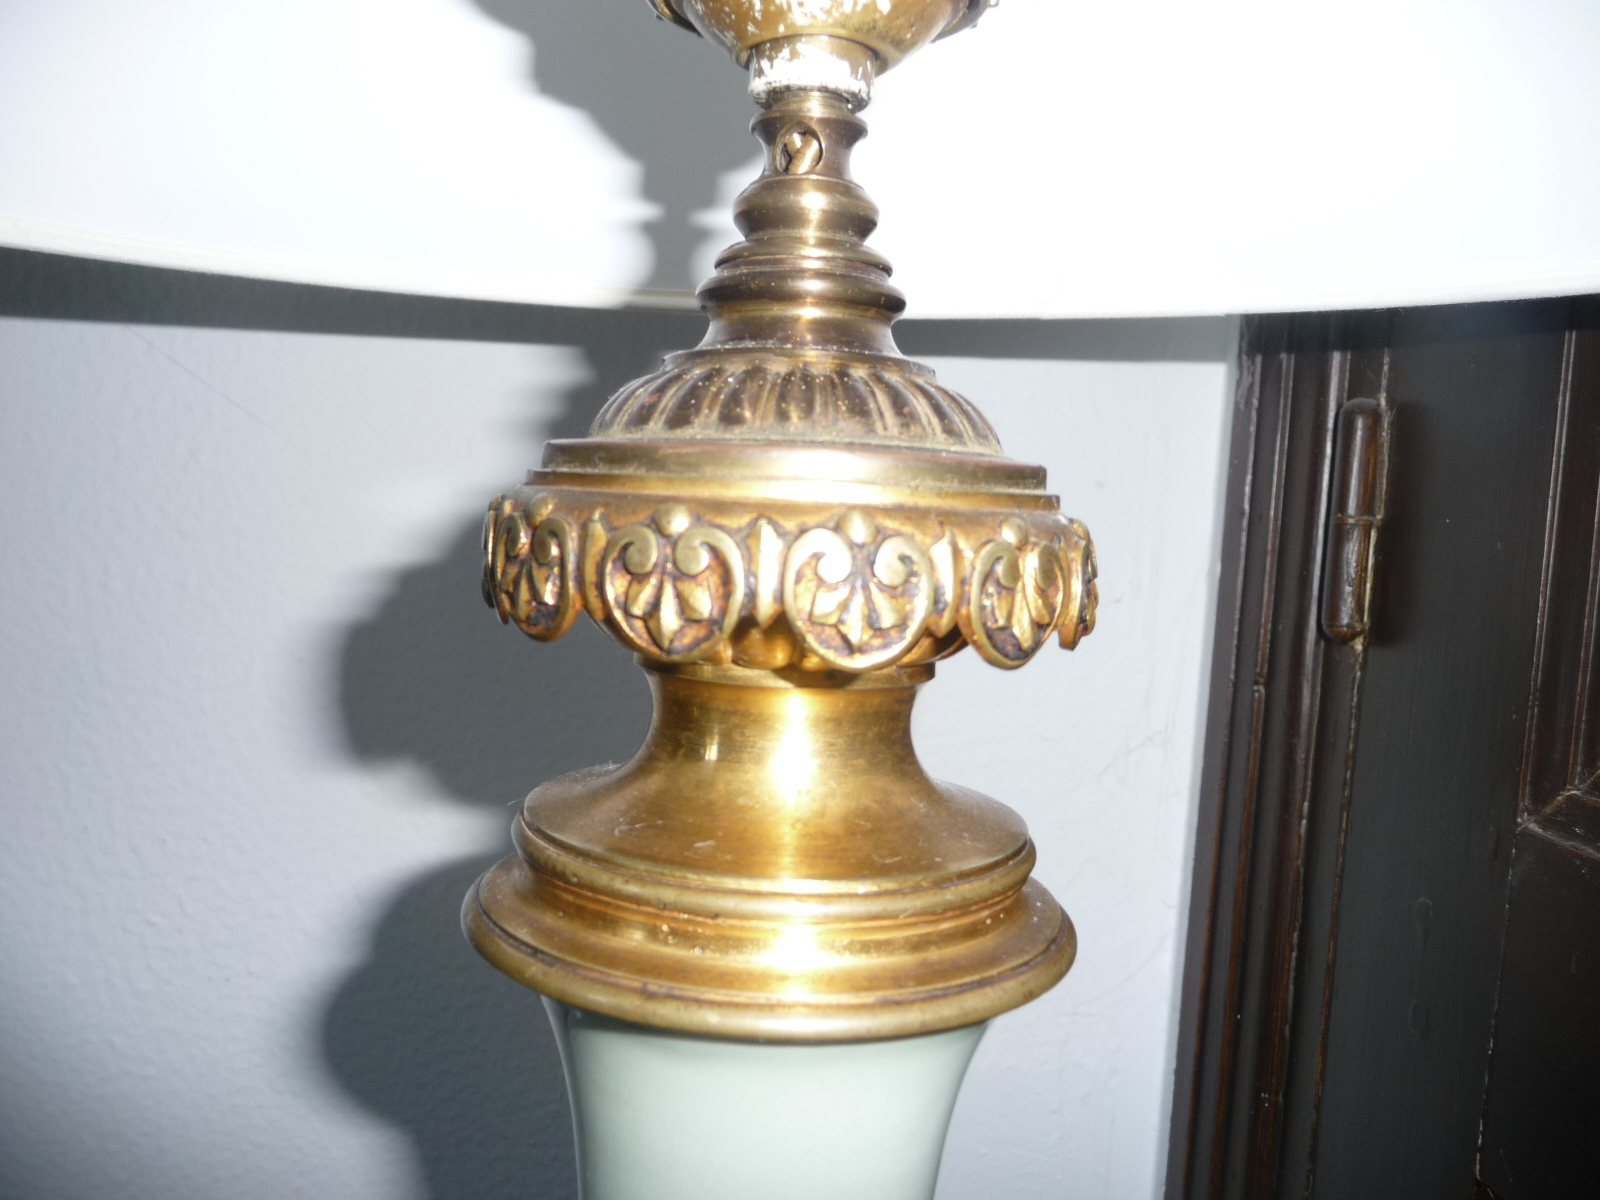 Lampe celadon xix century for sale antiques.com classifieds